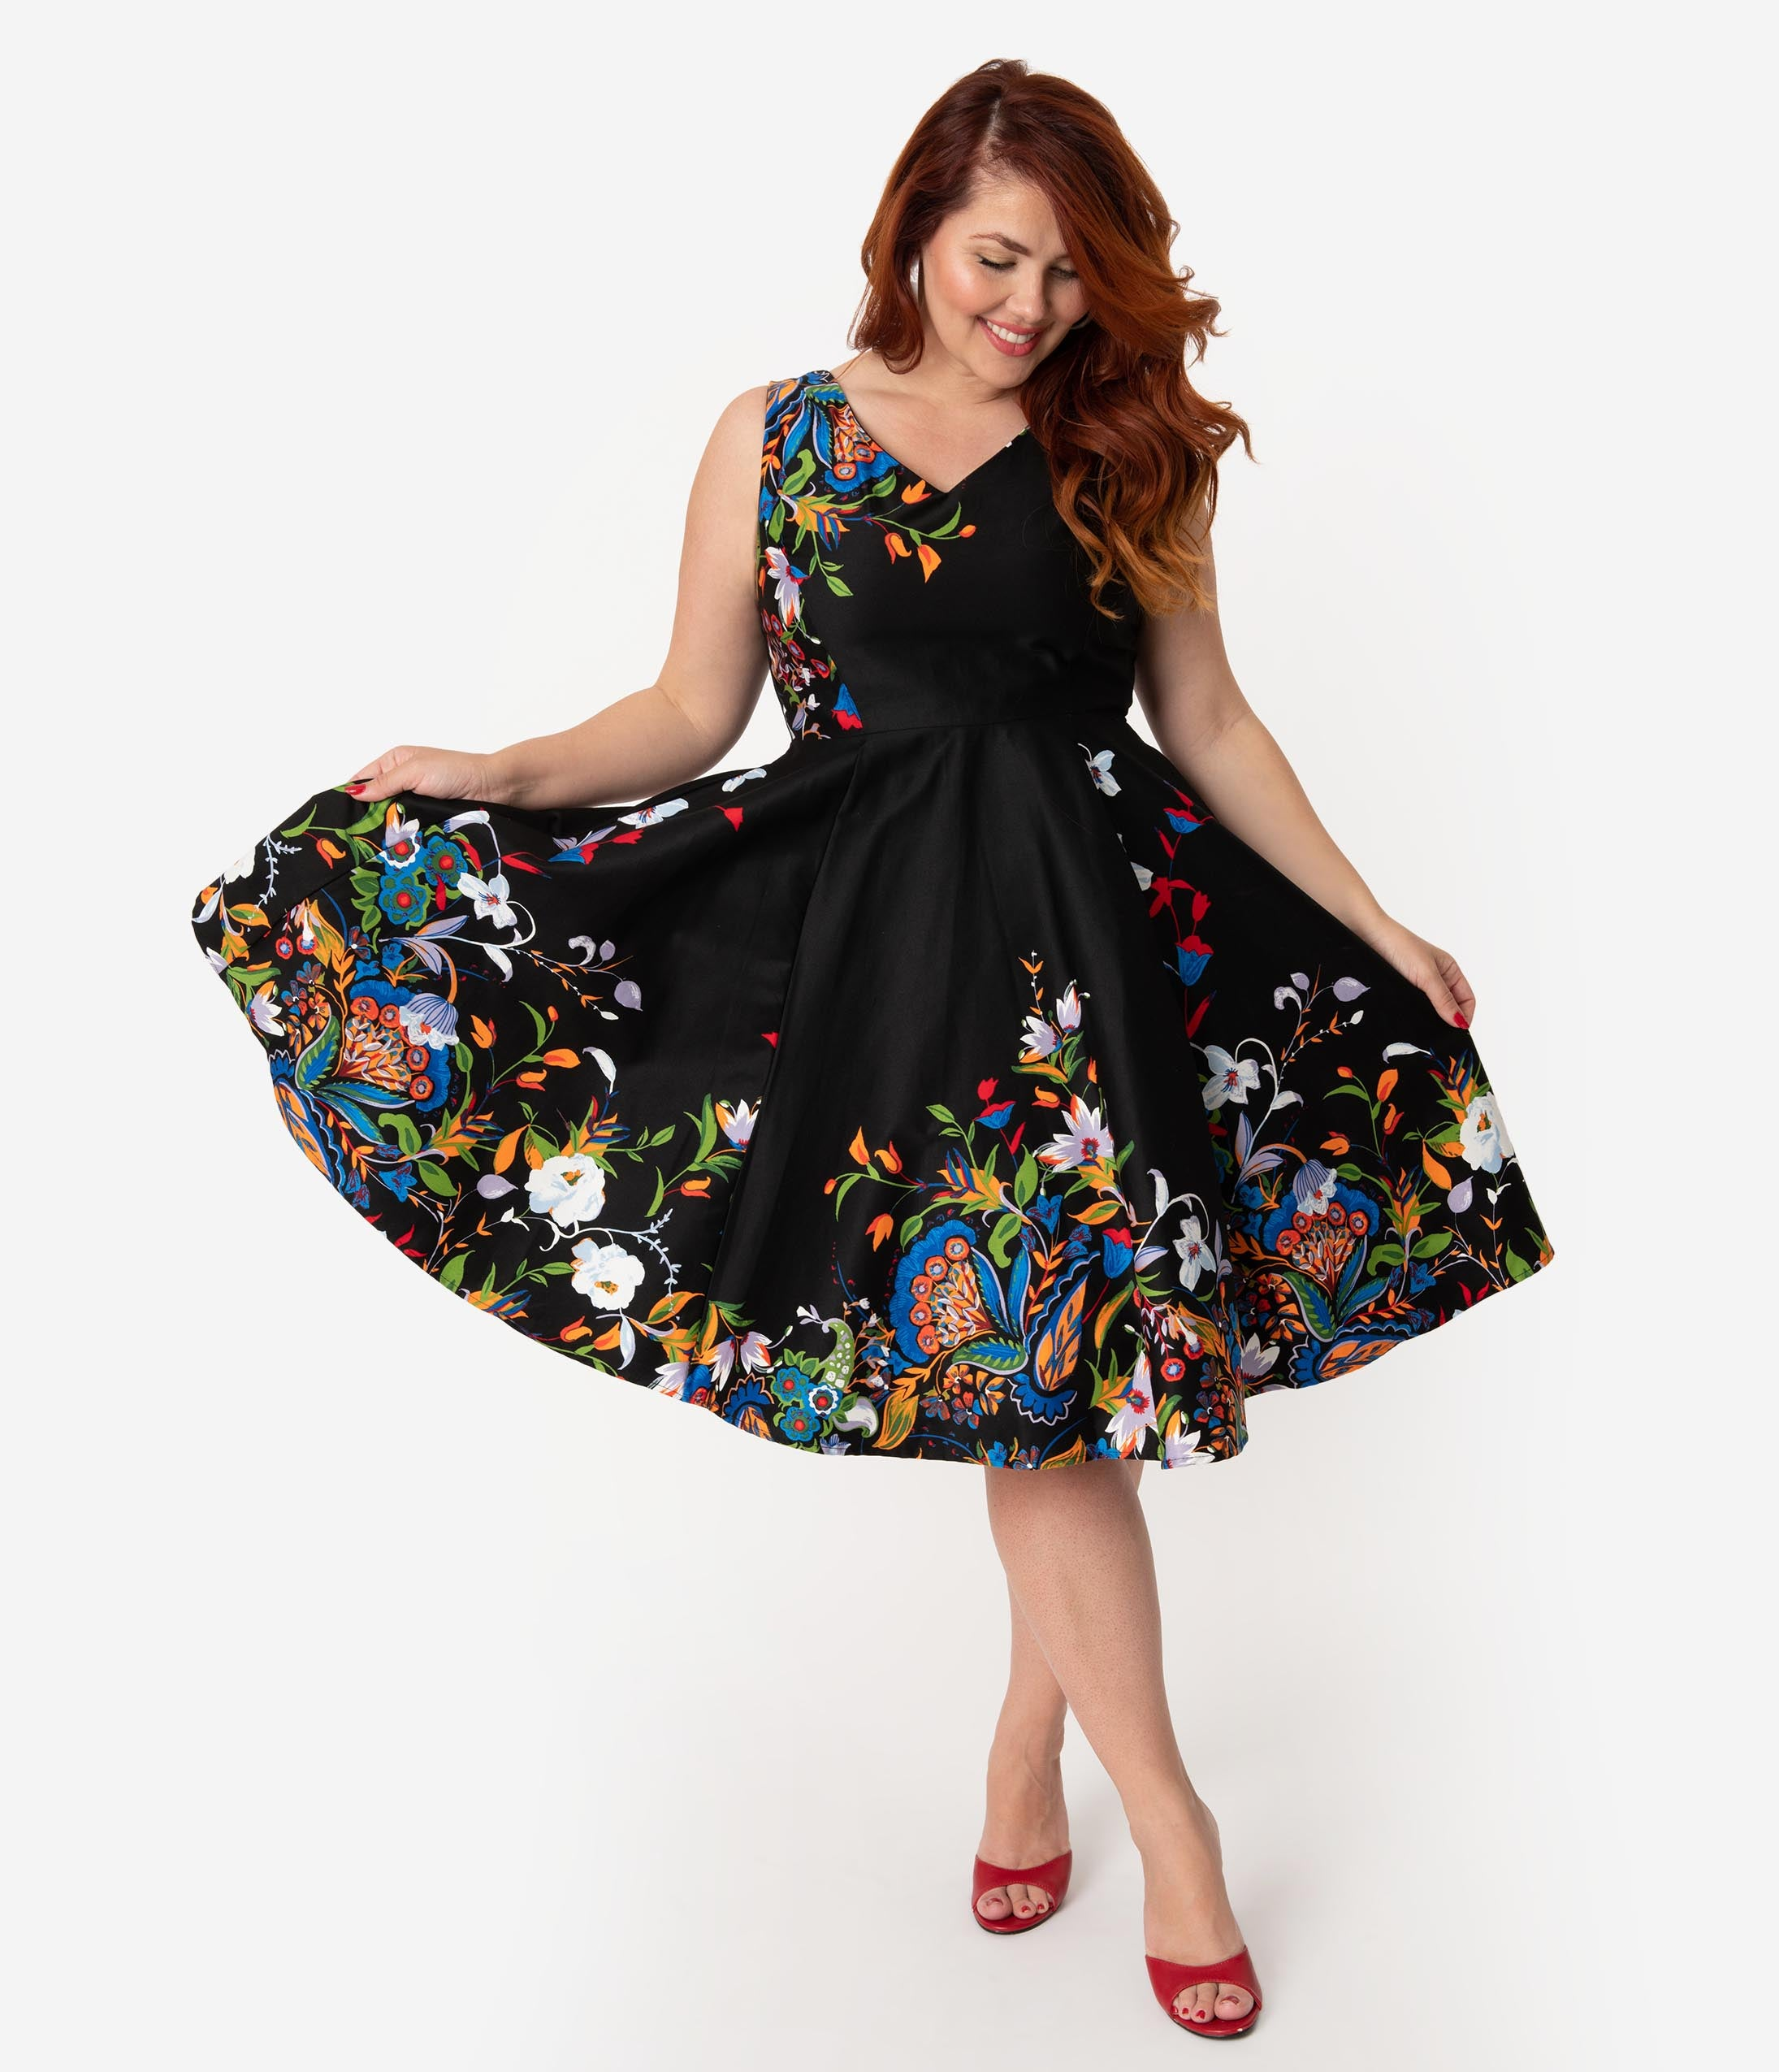 aa91f9b1cc1 Plus Size Black Border Floral Print Cotton Swing Dress